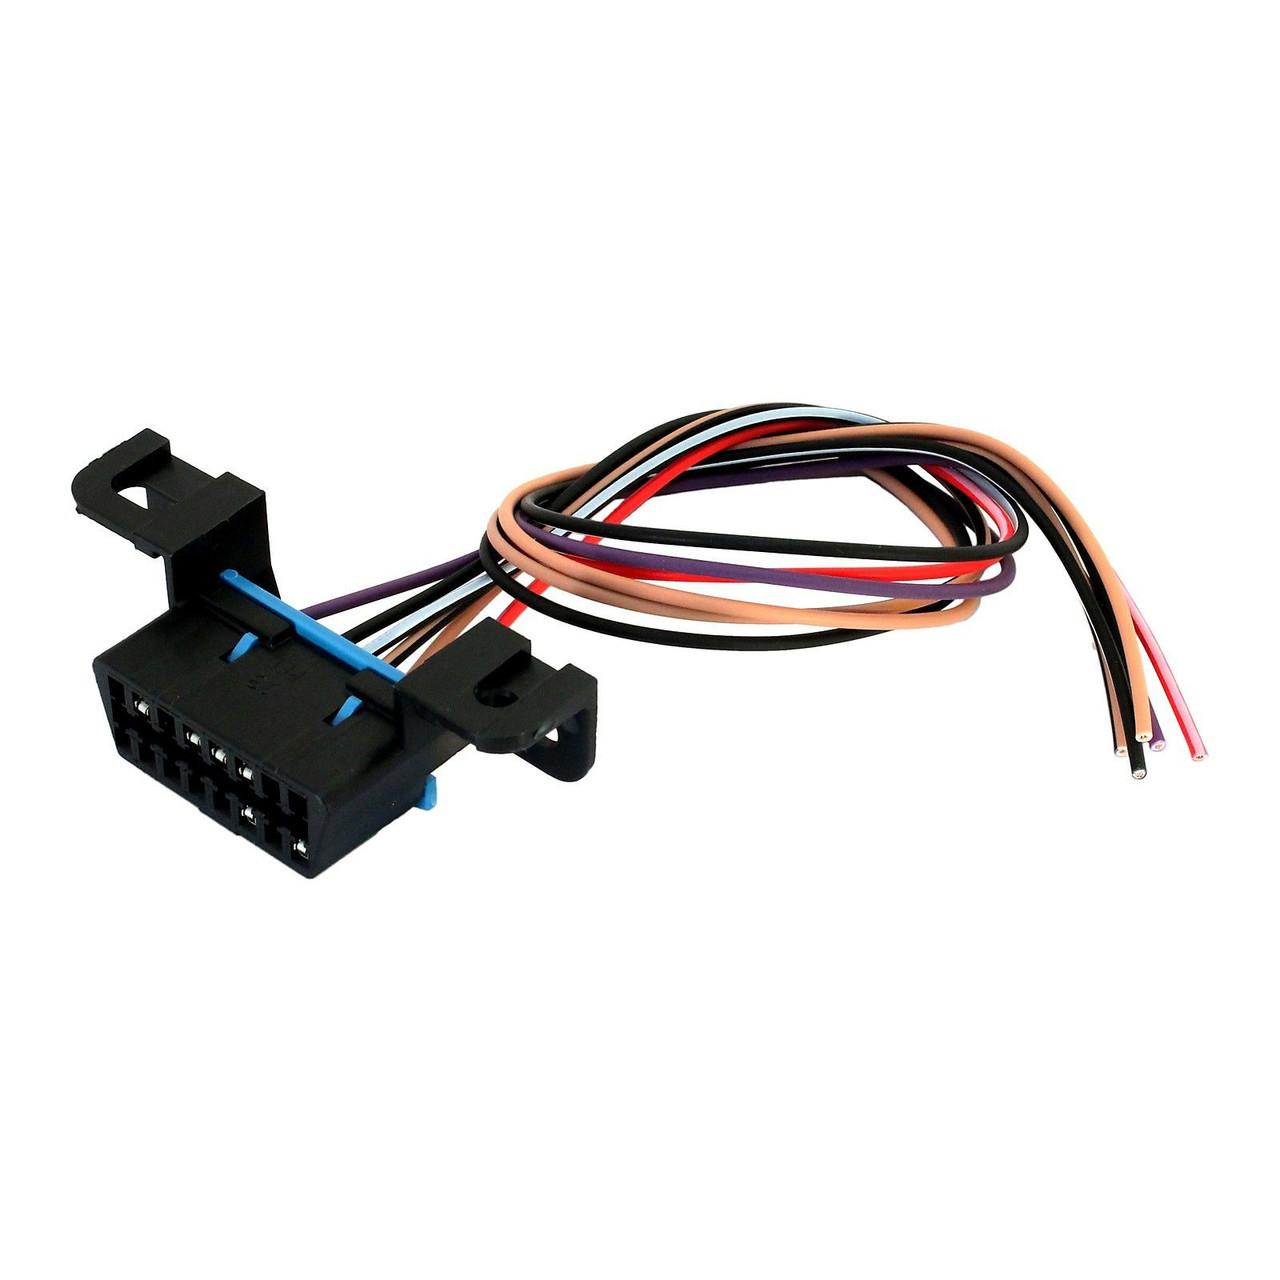 hight resolution of obdii obd2 j1962 class 2 can bus wiring harness connector pigtail dodge wiring harness can wiring harness